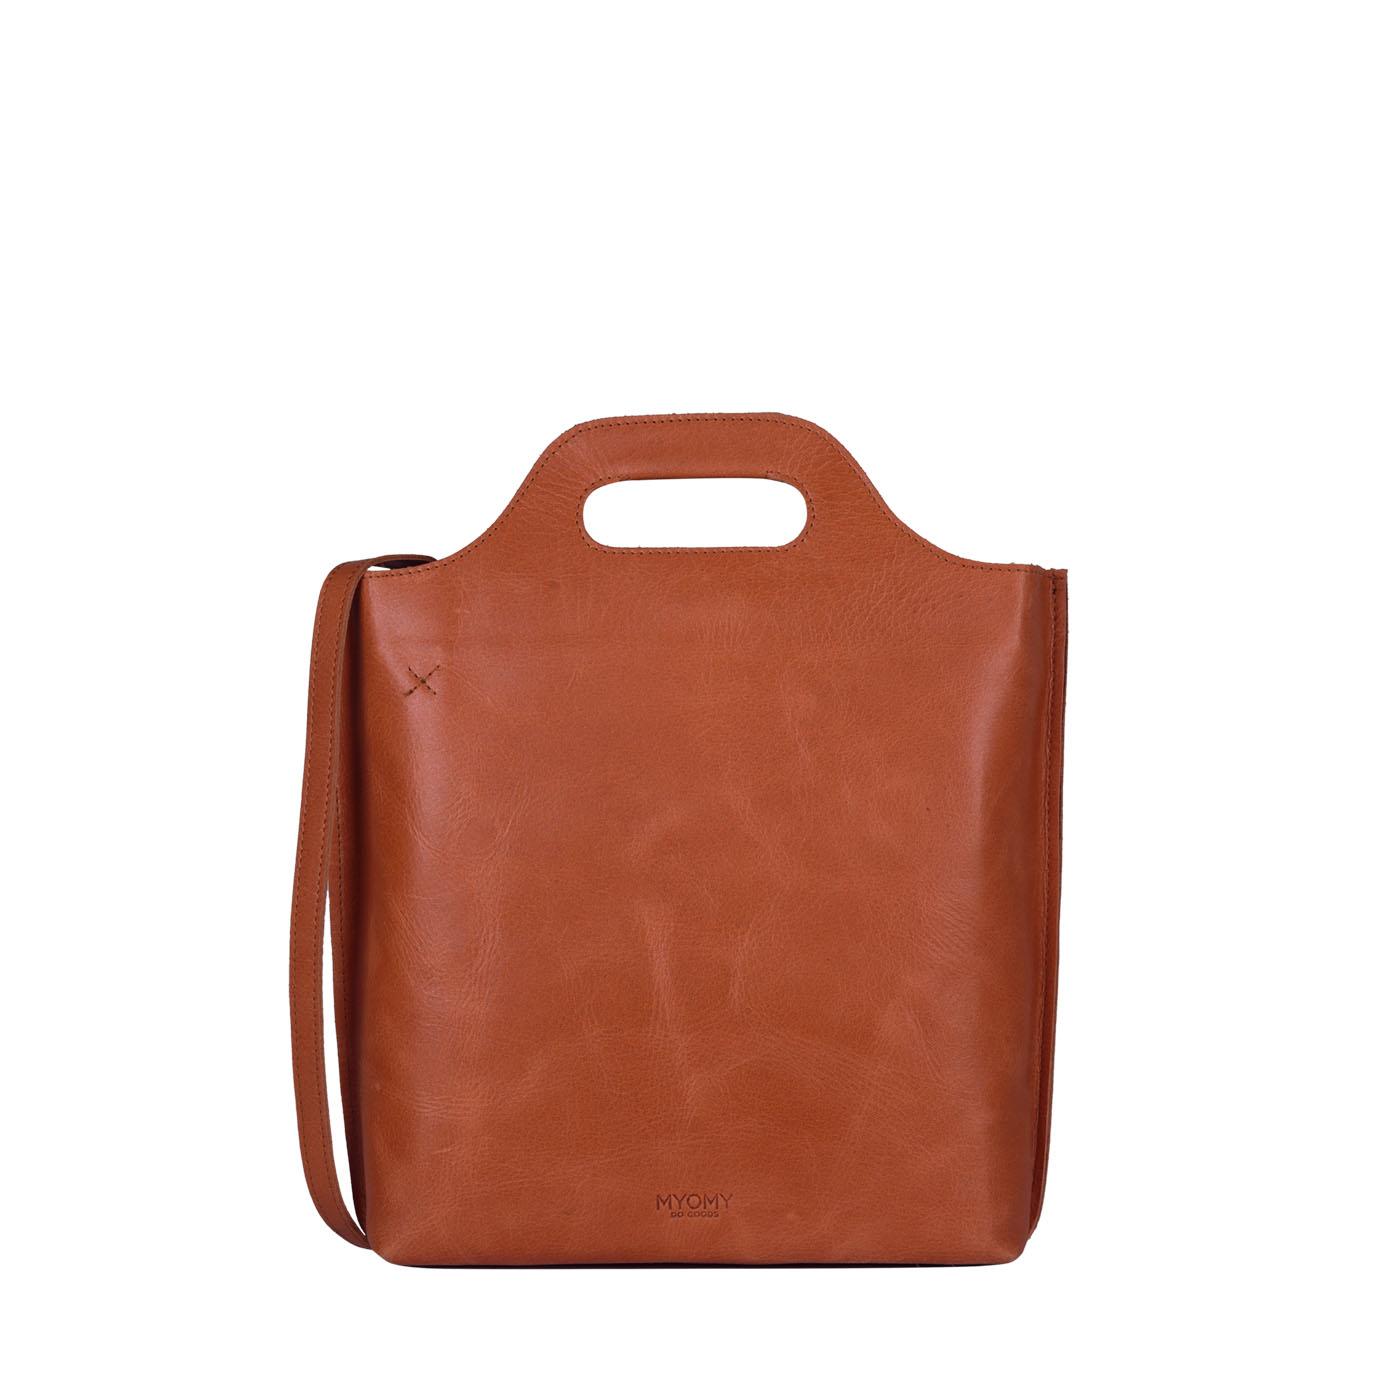 MY CARRY BAG shopper medium- hunter waxy ginger